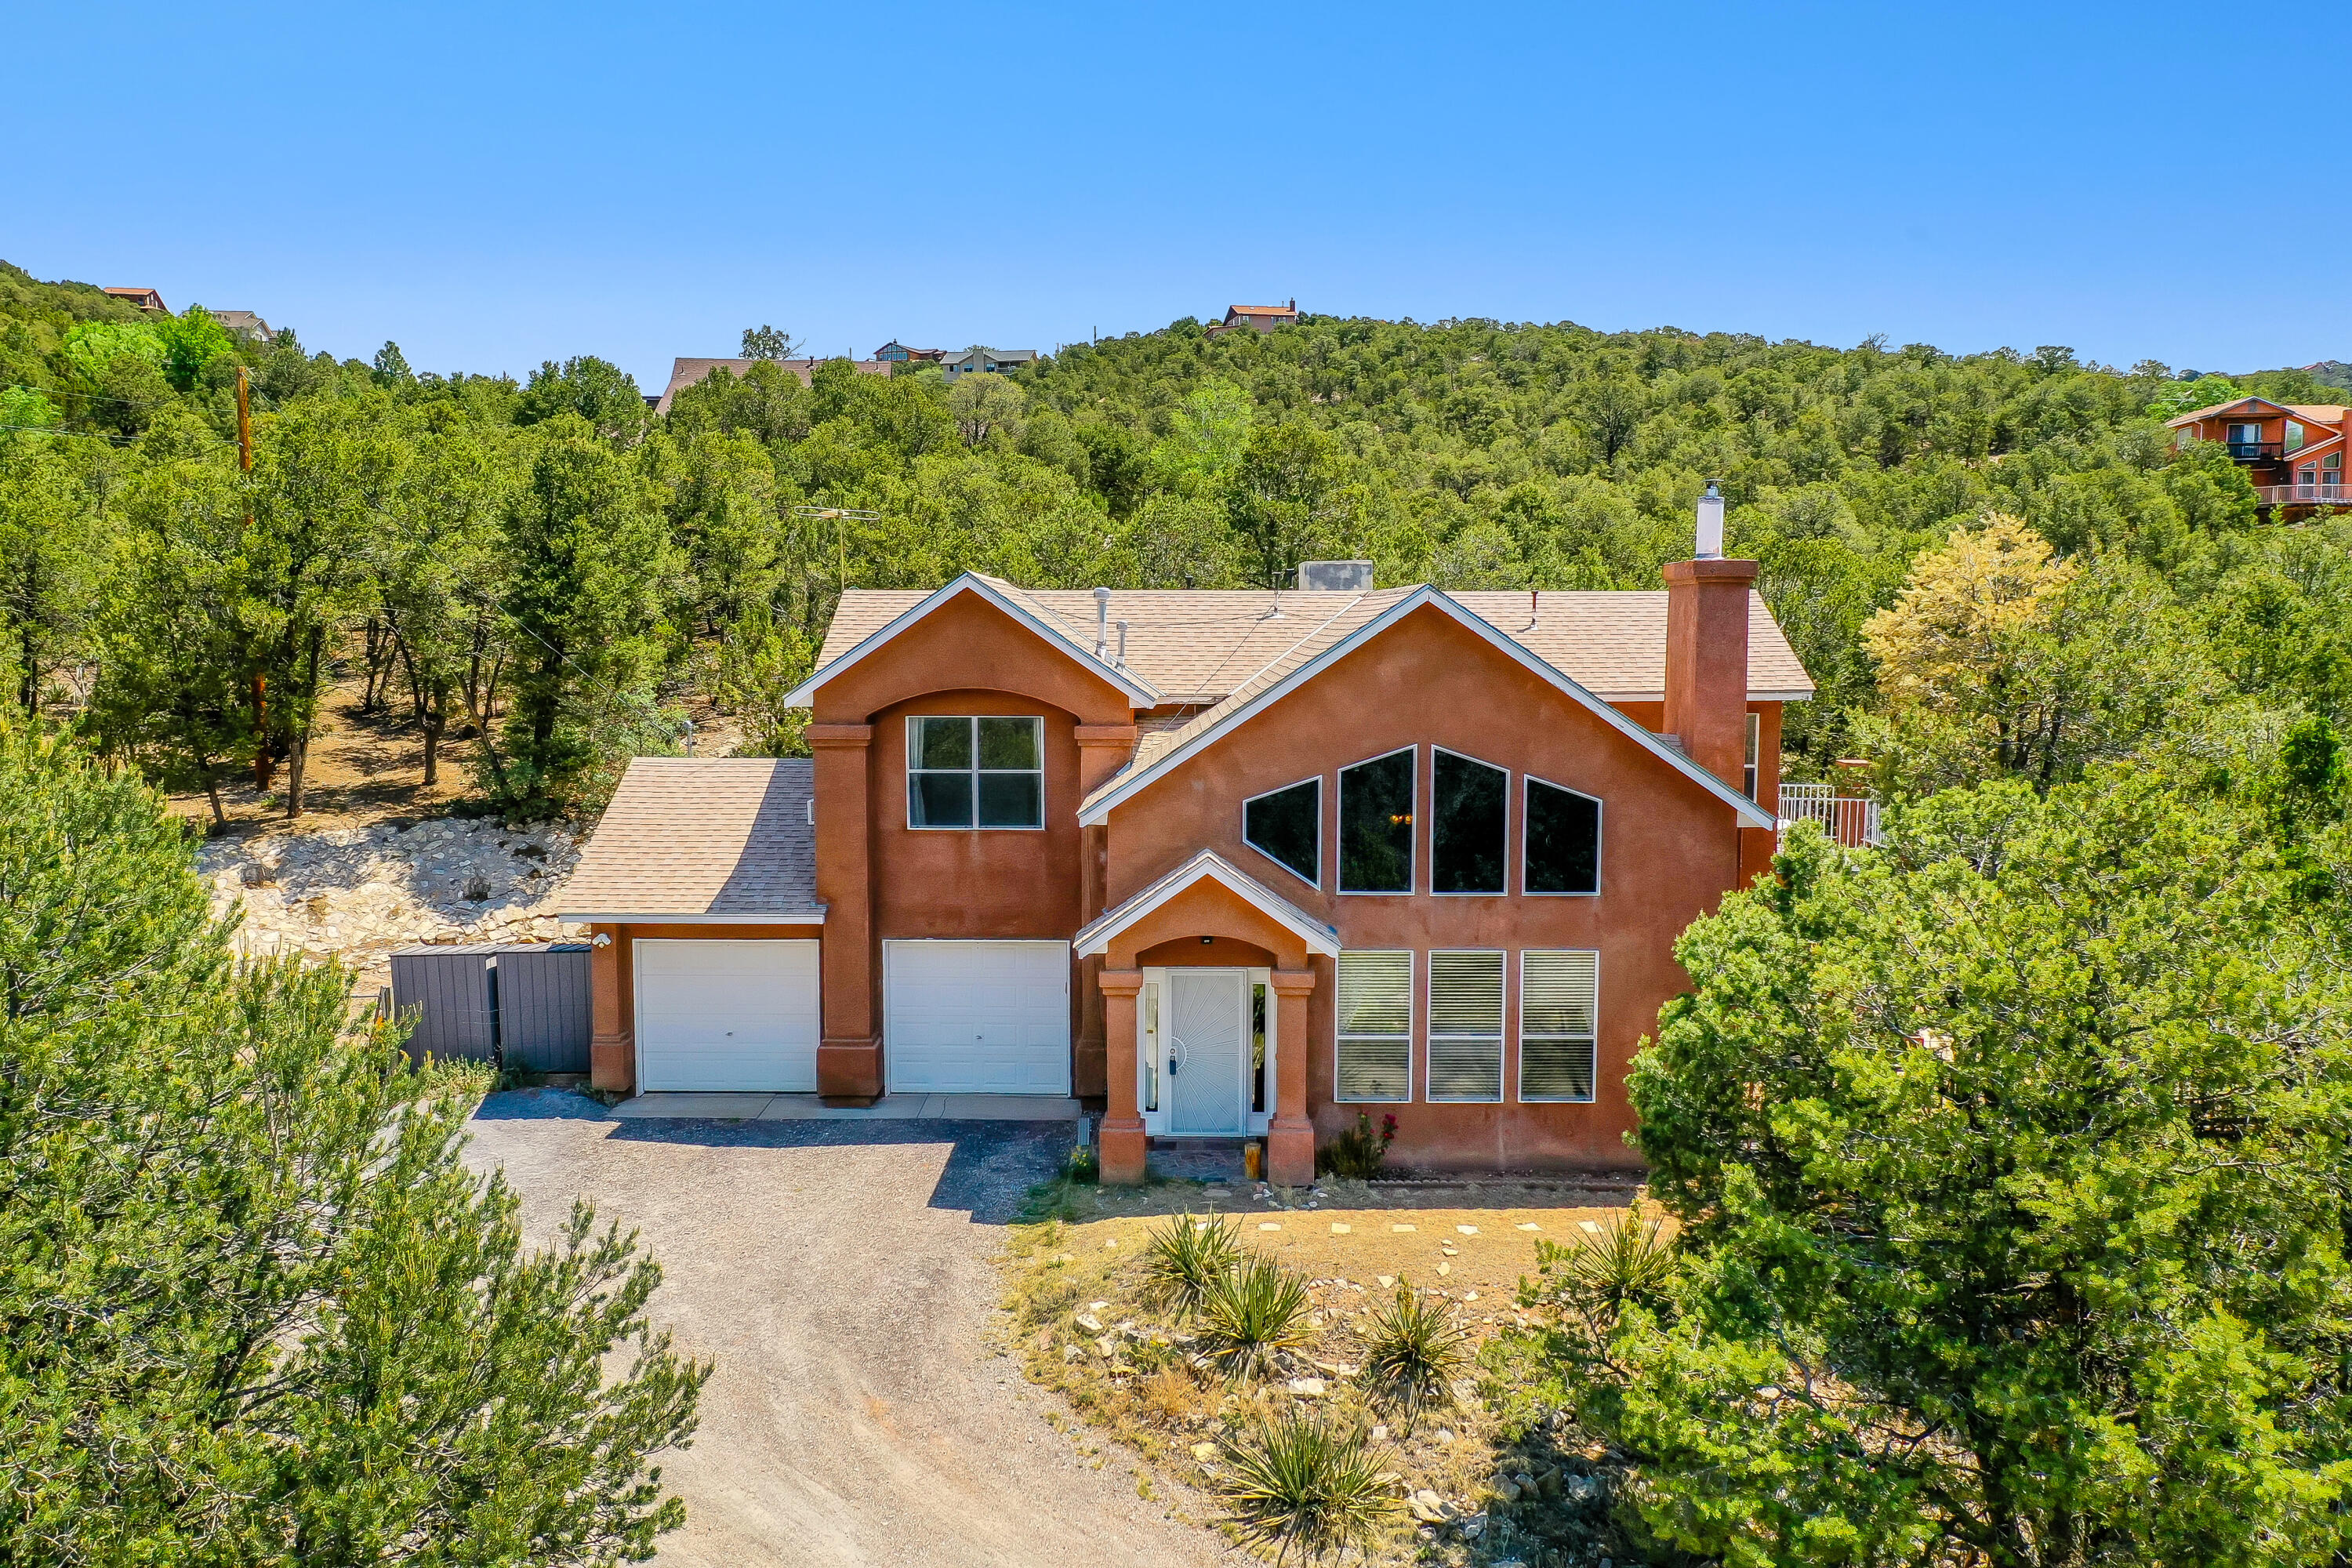 Mountain living just moments from Albuquerque! This move-in ready home has views that will take your breath away out every window! Enjoy the natural lighting in the great room that acts as solar heating in the winter, and the semi-tinted & UV-protected windows allows for cooler living in the heat of summer. Sitting on about 1 acre, you'll have your very own mountain retreat with a large deck and gravel patio to entertain or relax. New water heater installed in 2019. A water softener as well as a reverse osmosis water filter are already installed to enjoy your fresh, crisp well water. A shared well, non-leased 500gal propane tank, and your own septic tank & drain field allows for low-cost maintenance year-round.